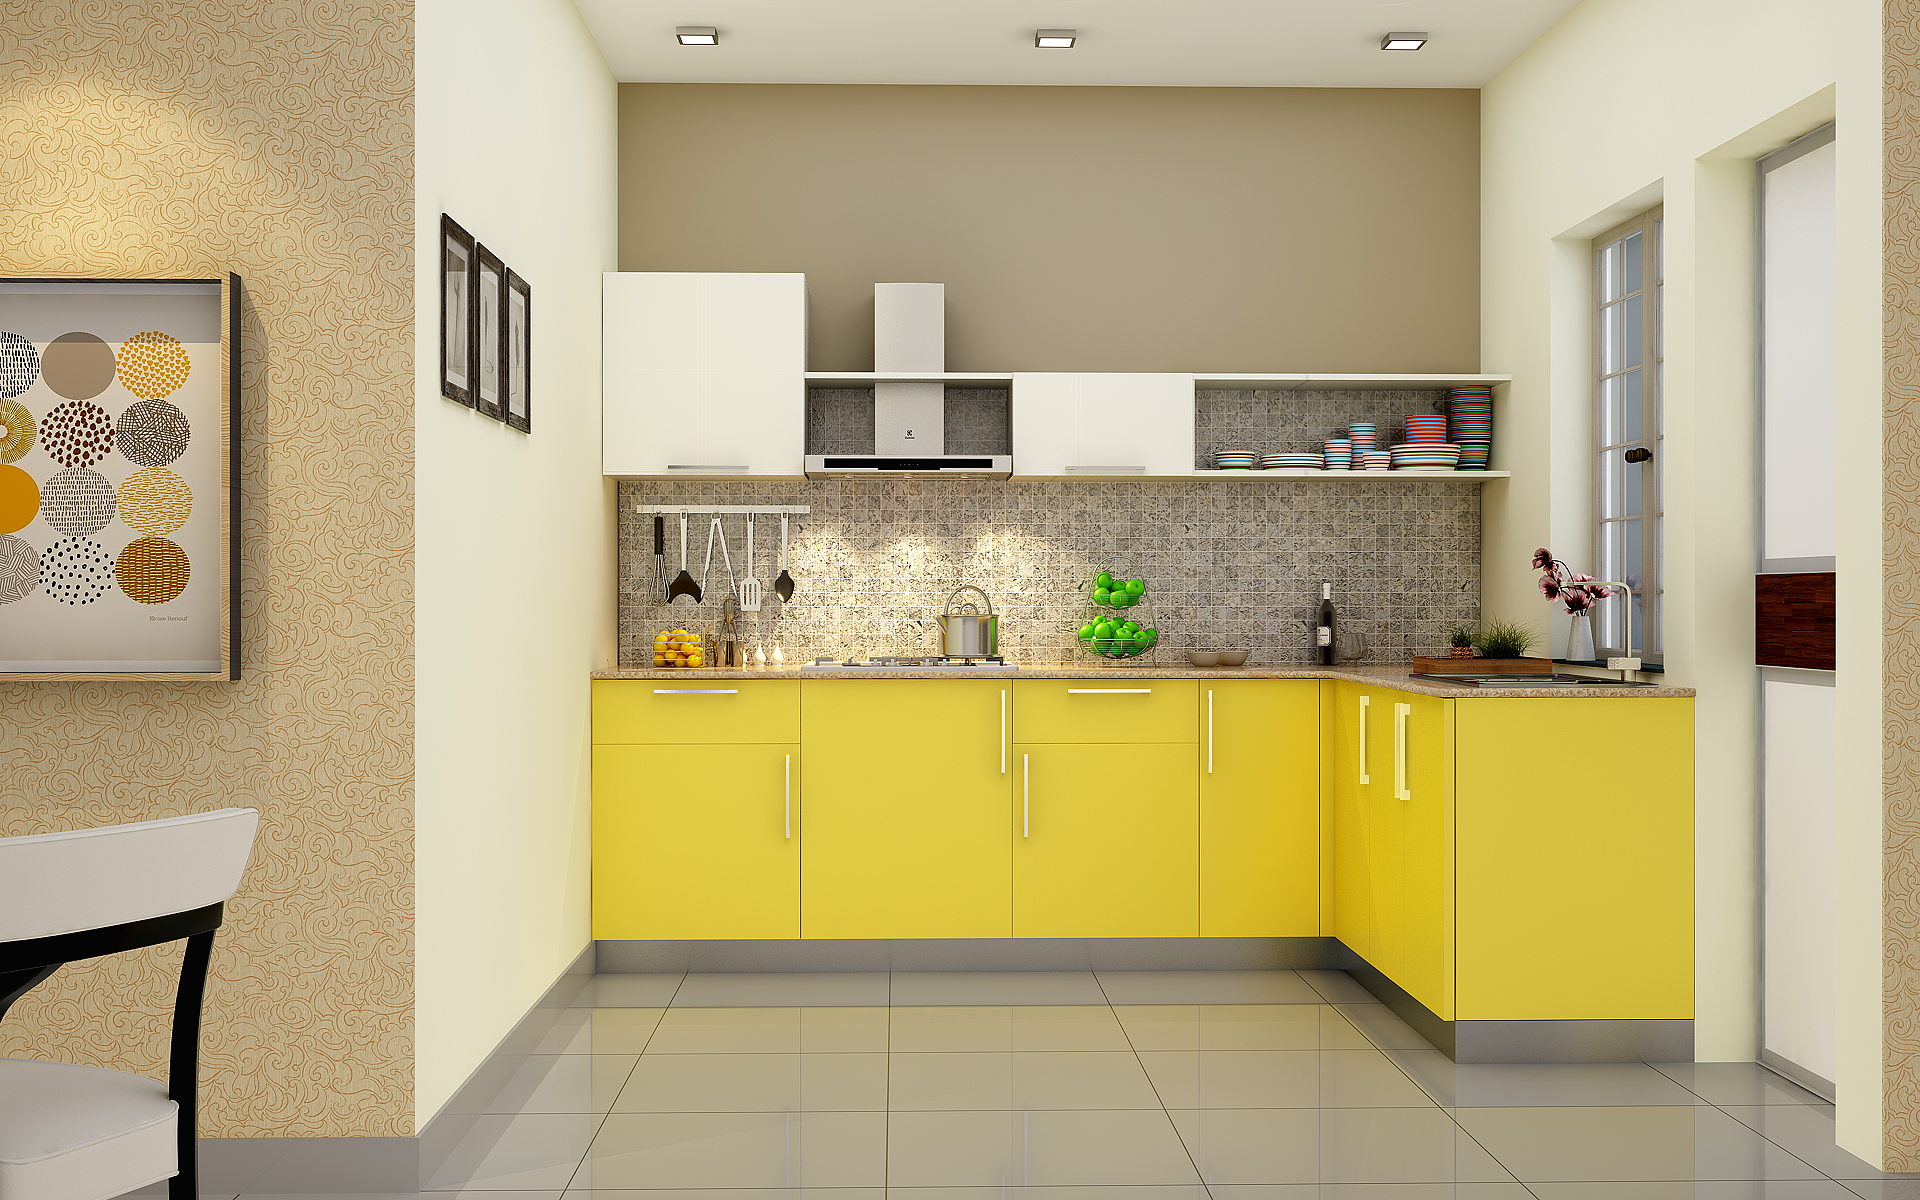 Indian Small Kitchen Design Winda 7 Furniture Intended For Small Kitchen Design Ideas India